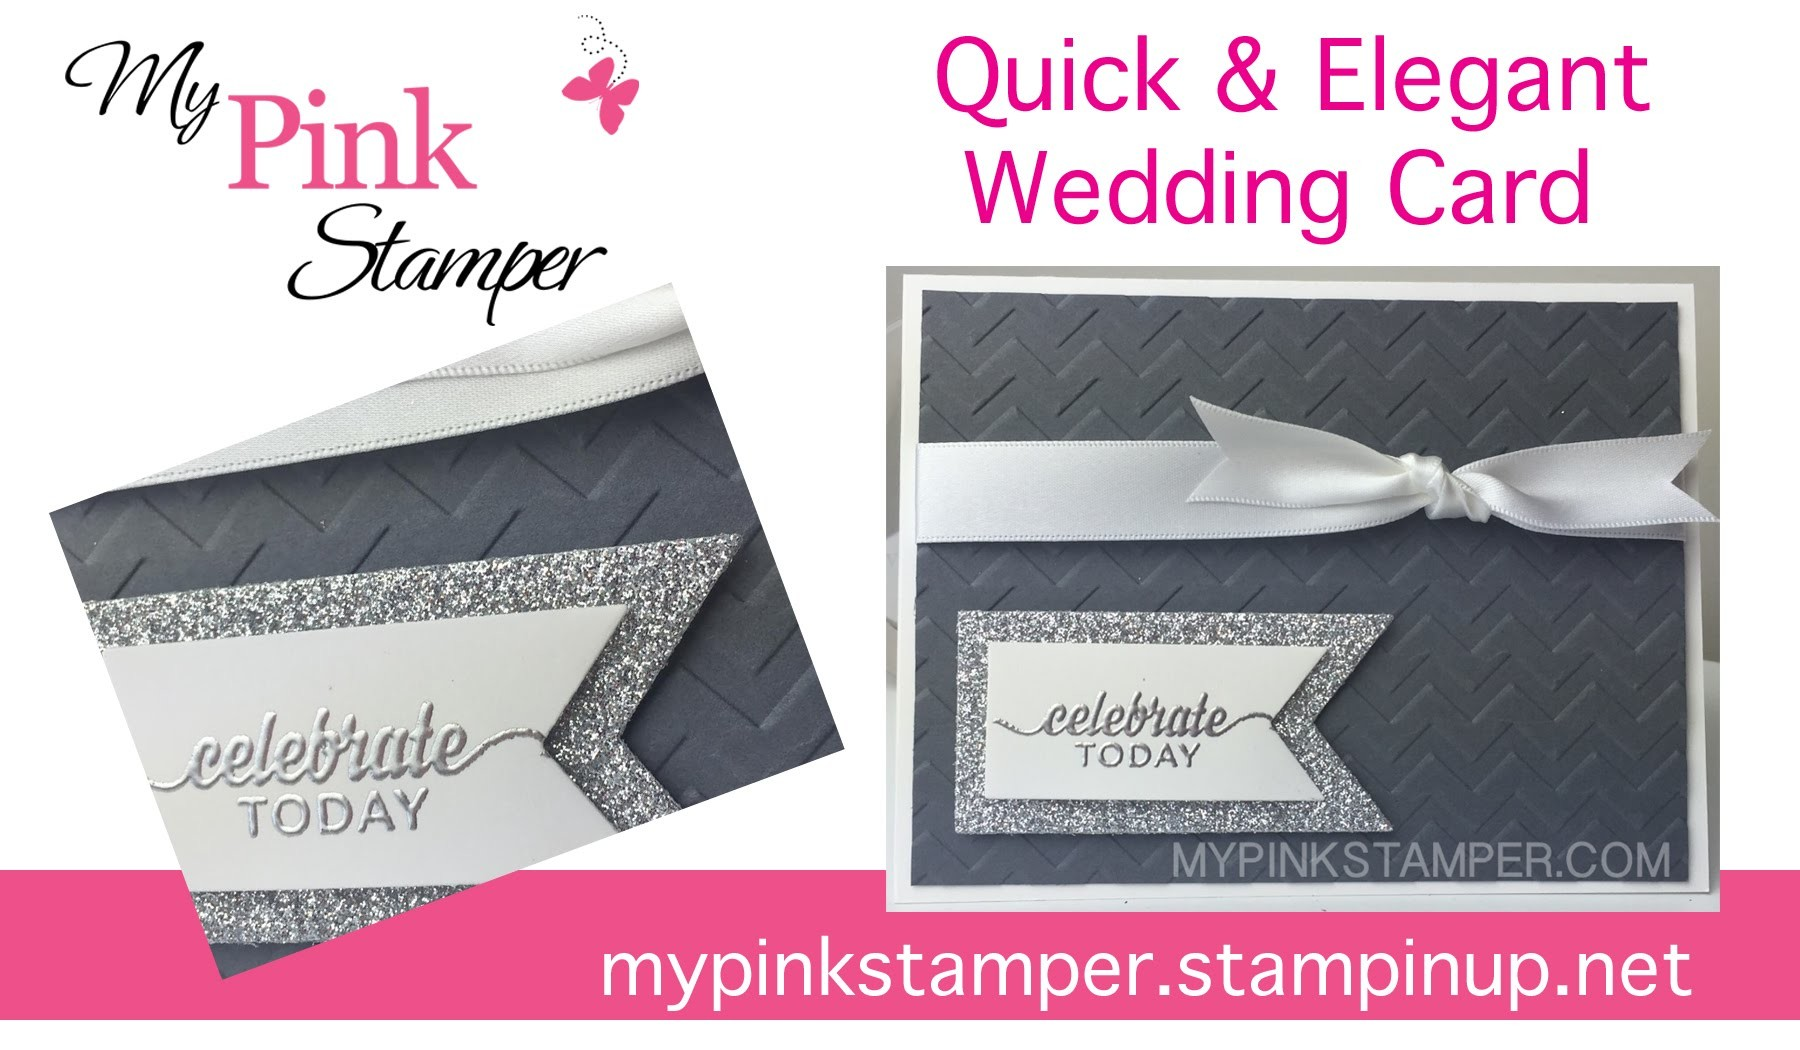 A Quick & Elegant Wedding Card with Stampin' Up! - Episode 444